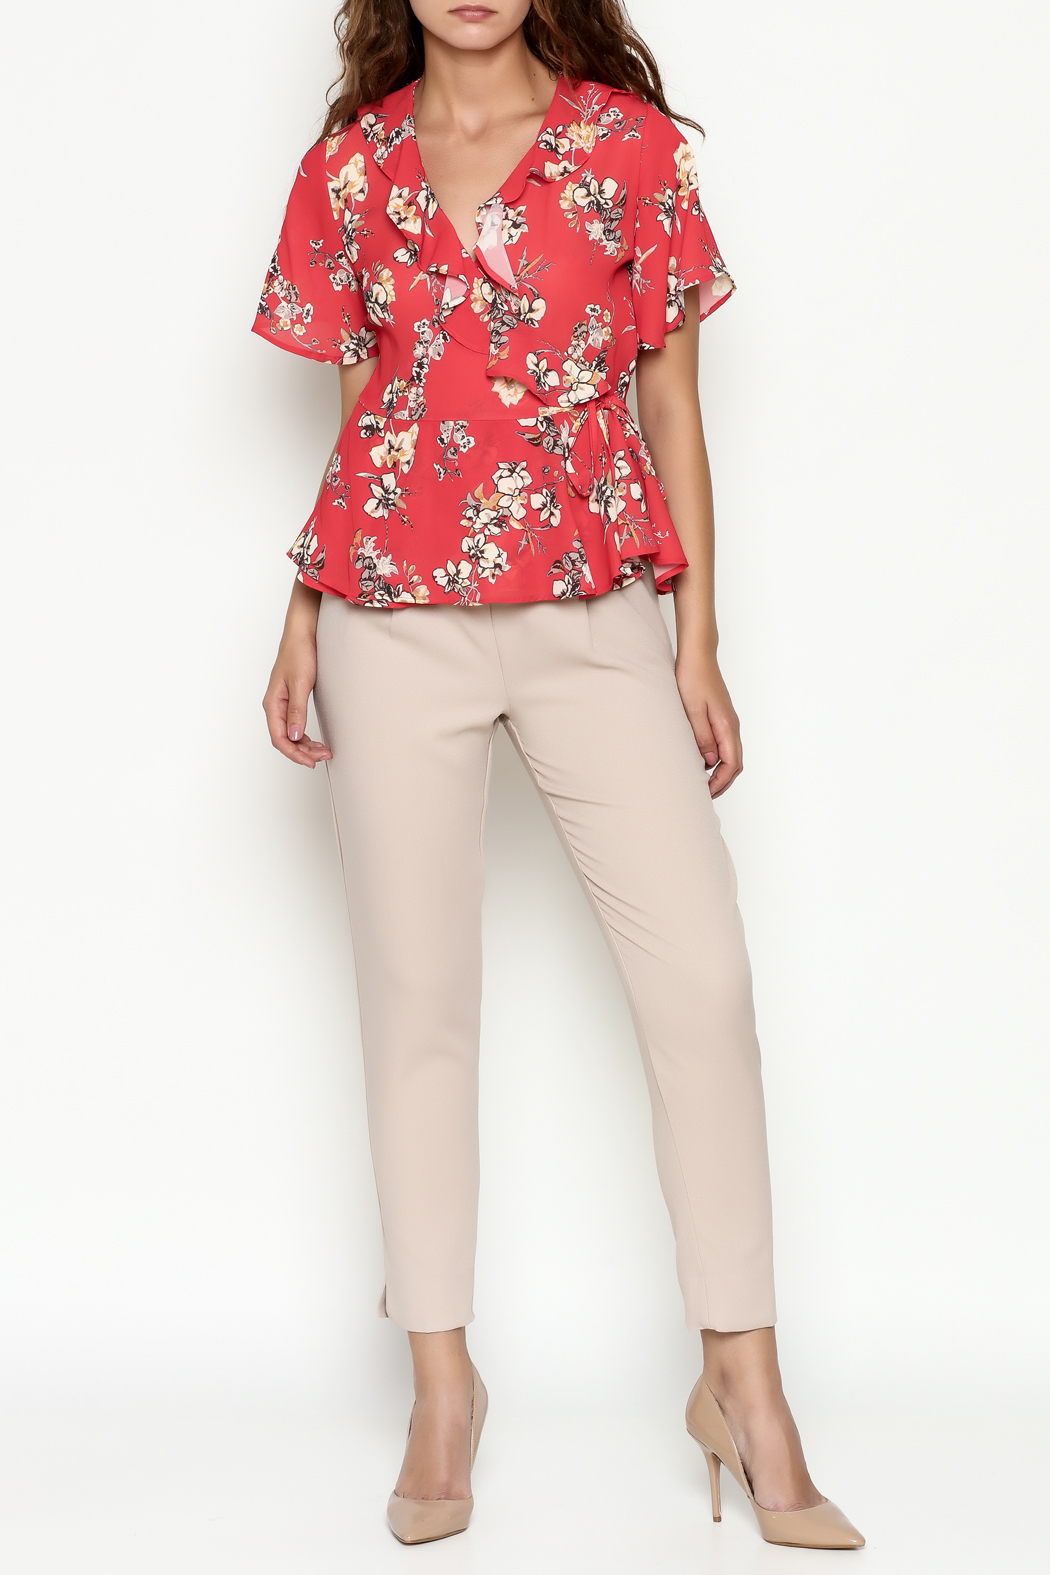 Marvy Fashion Floral Surplice Top - Side Cropped Image